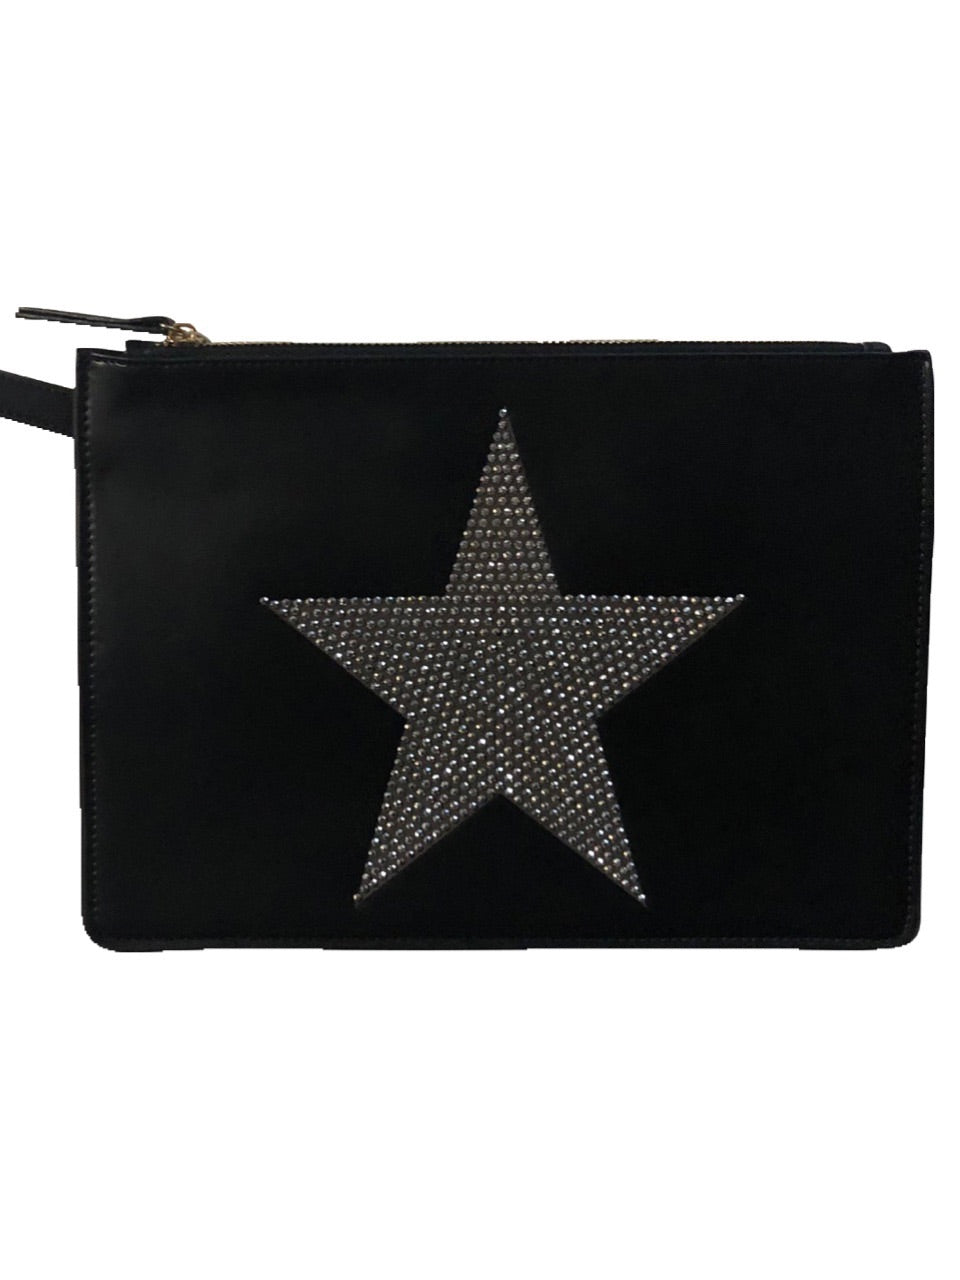 BLACK PVC CLUTCH WITH SILVER CRYSTAL STAR